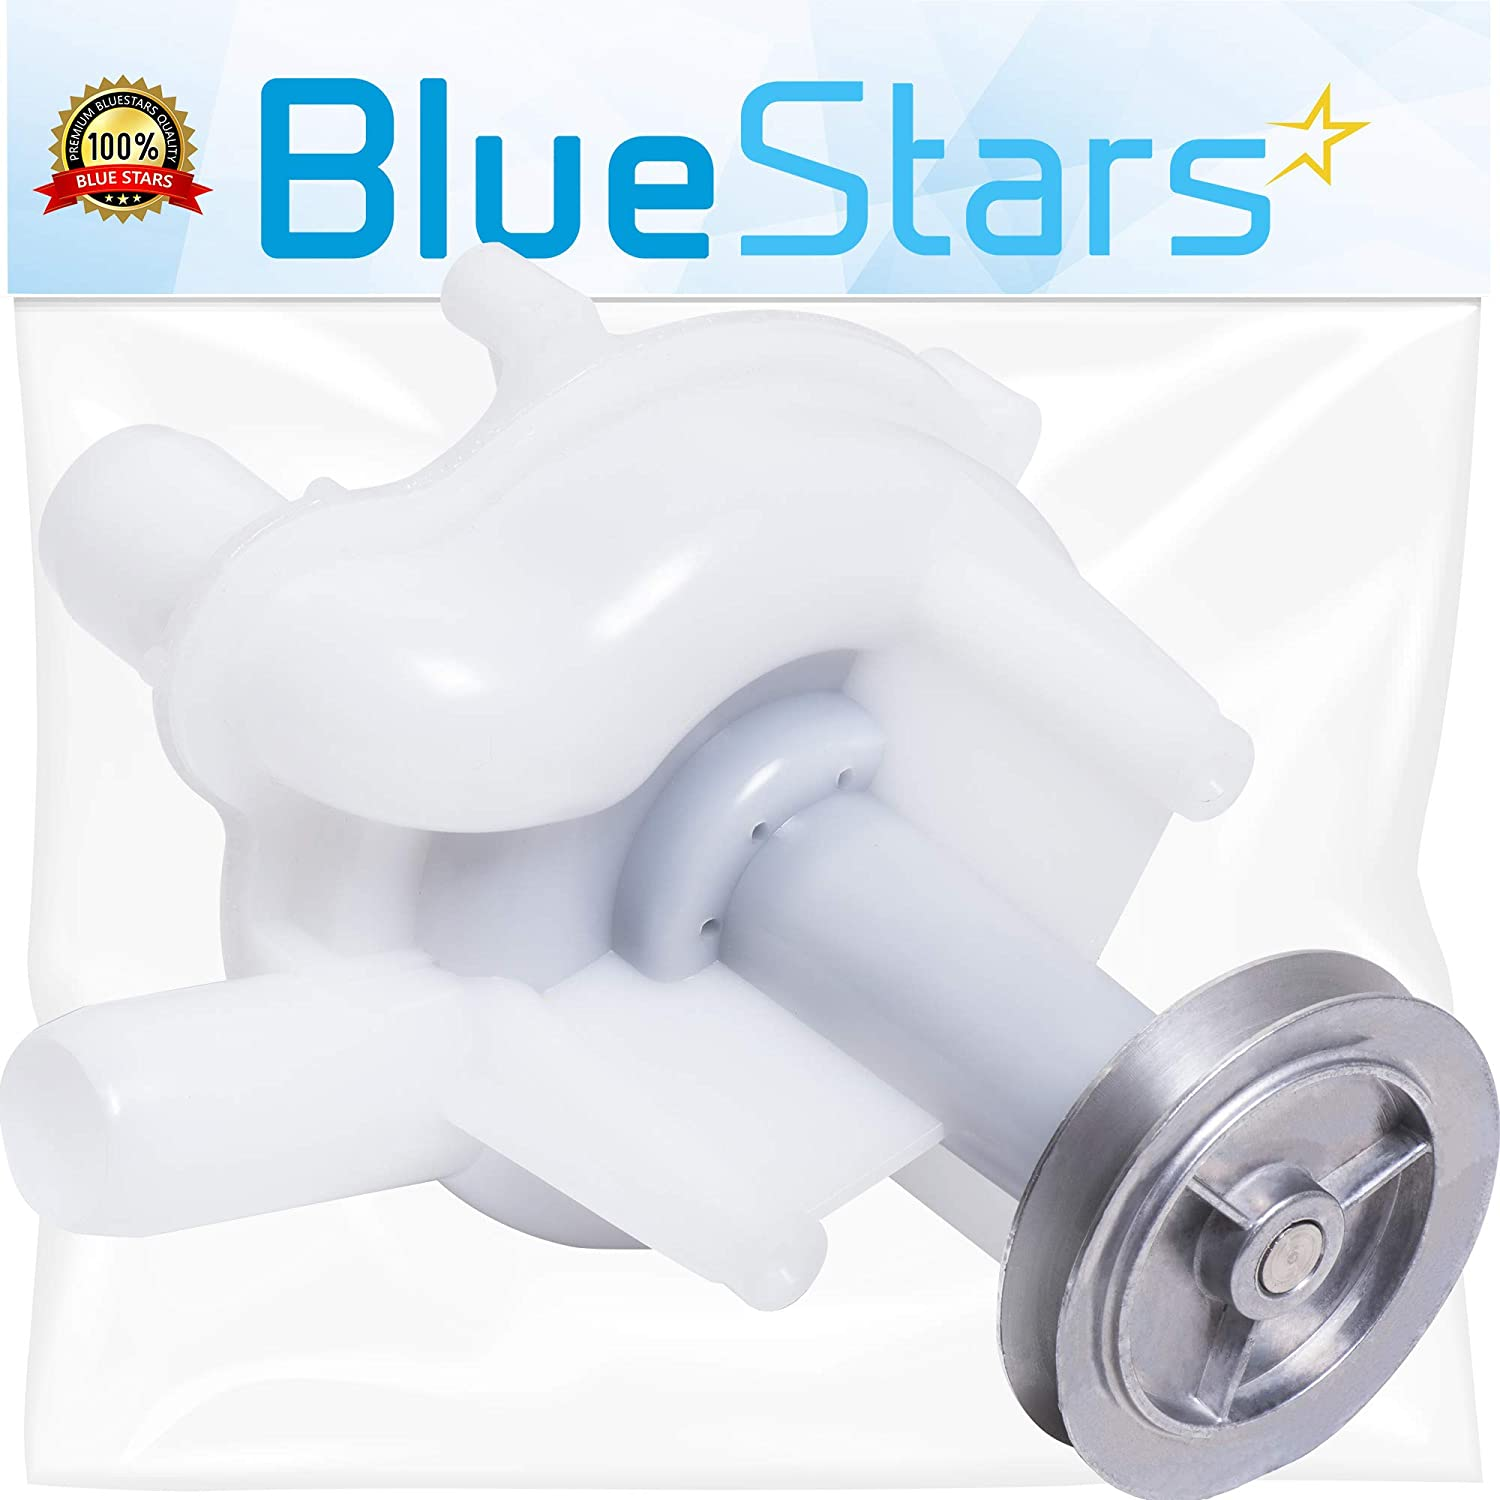 Ultra Durable 202203 Washer Drain Pump Replacement part by Blue Stars - Exact Fit for Whirlpool & Maytag Washers - Replaces 202203, 202540, 6-2022030, WP6-2022030 BlueStars